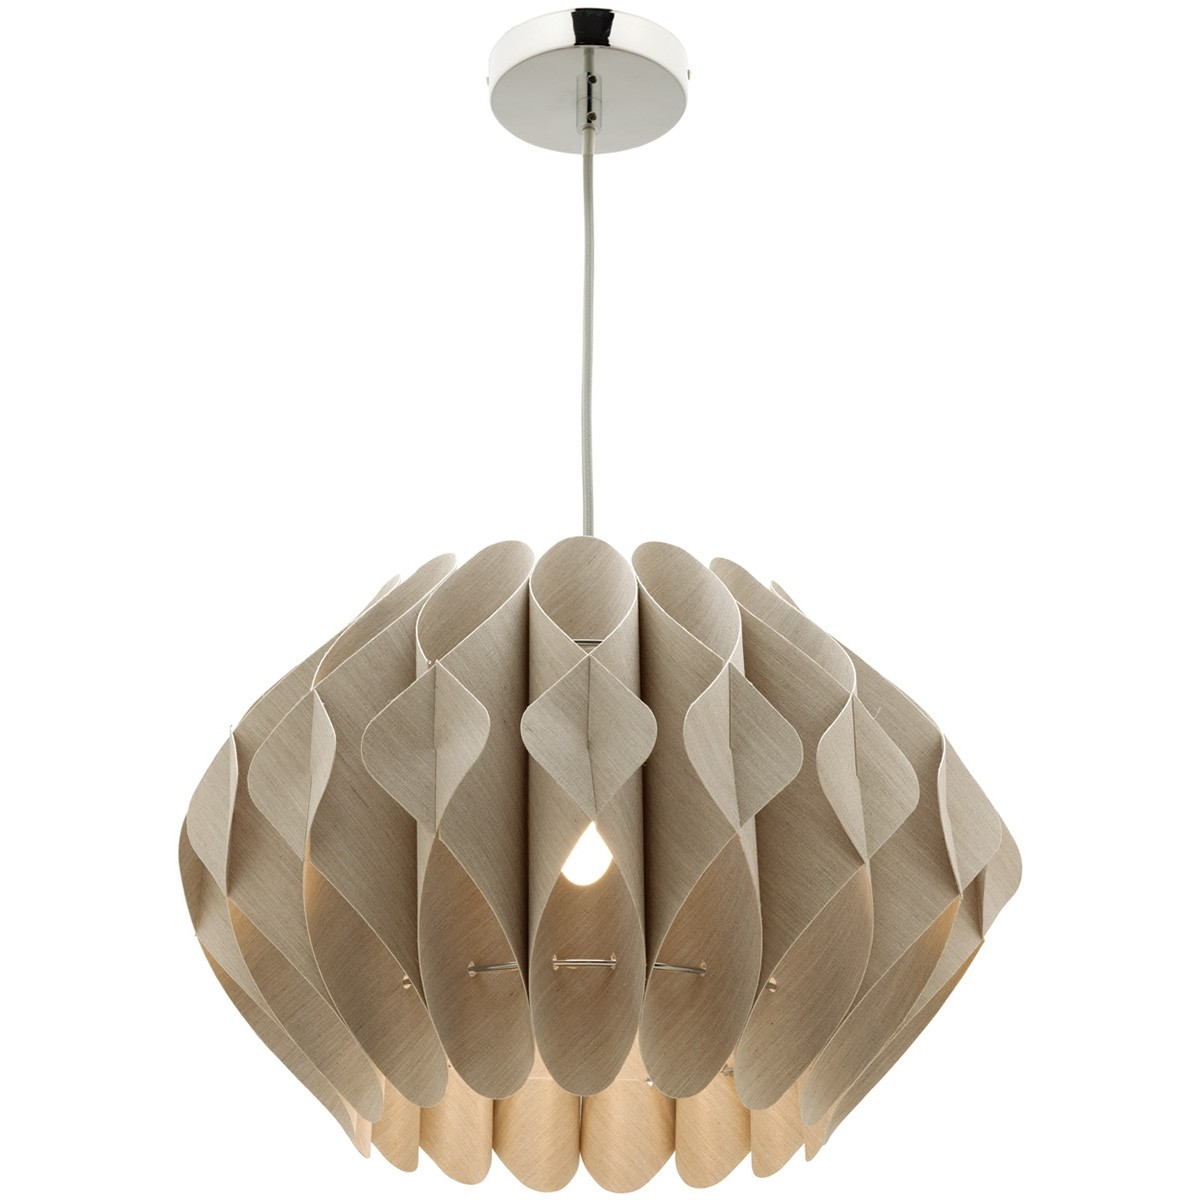 Missy 1 Light Fabric Pendant Light, Large